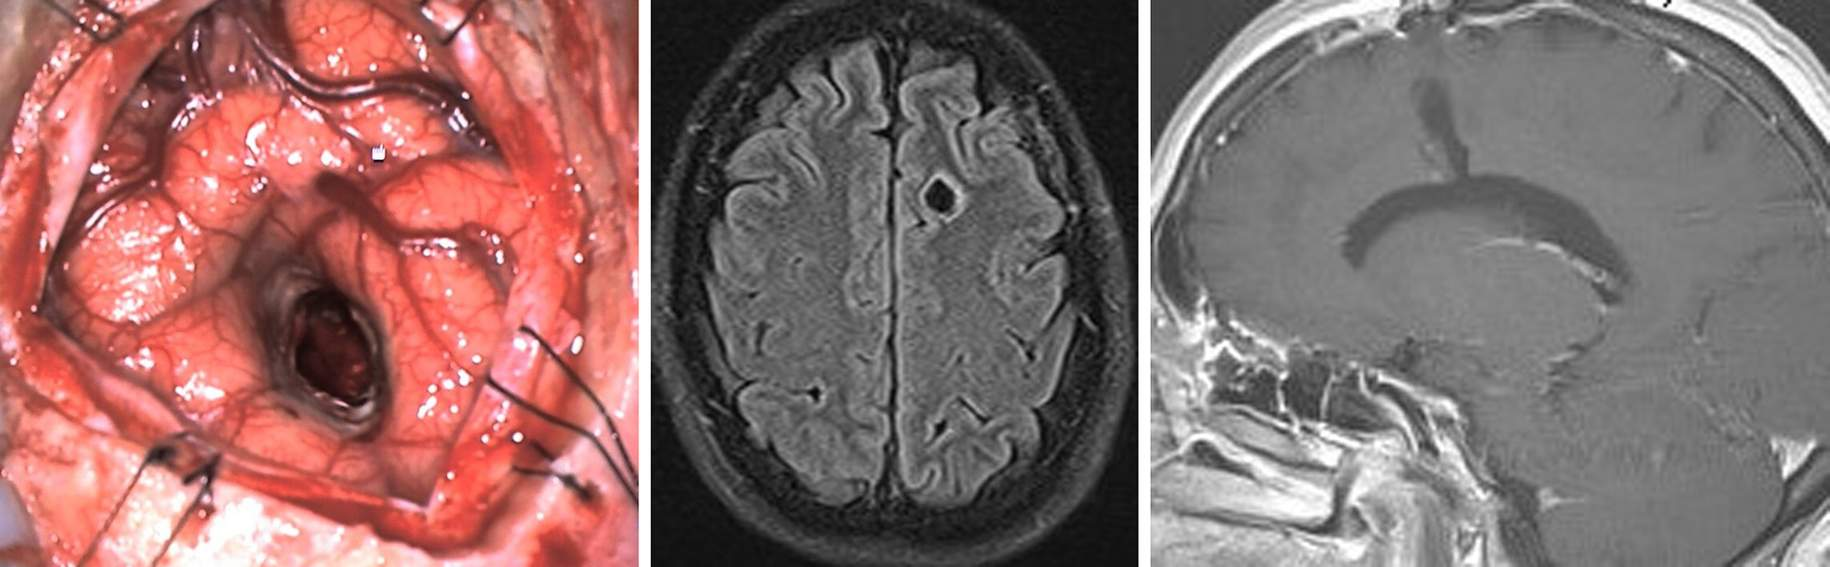 Figure 6: This photo reveals the relatively minimal amount of cortical disruption inflicted by the use of the described minitubular retractor system (left photo). The degrees of cortical and subcortical involvement by the miniretractor are demonstrated on magnetic resonance (MR) images (middle and right images).